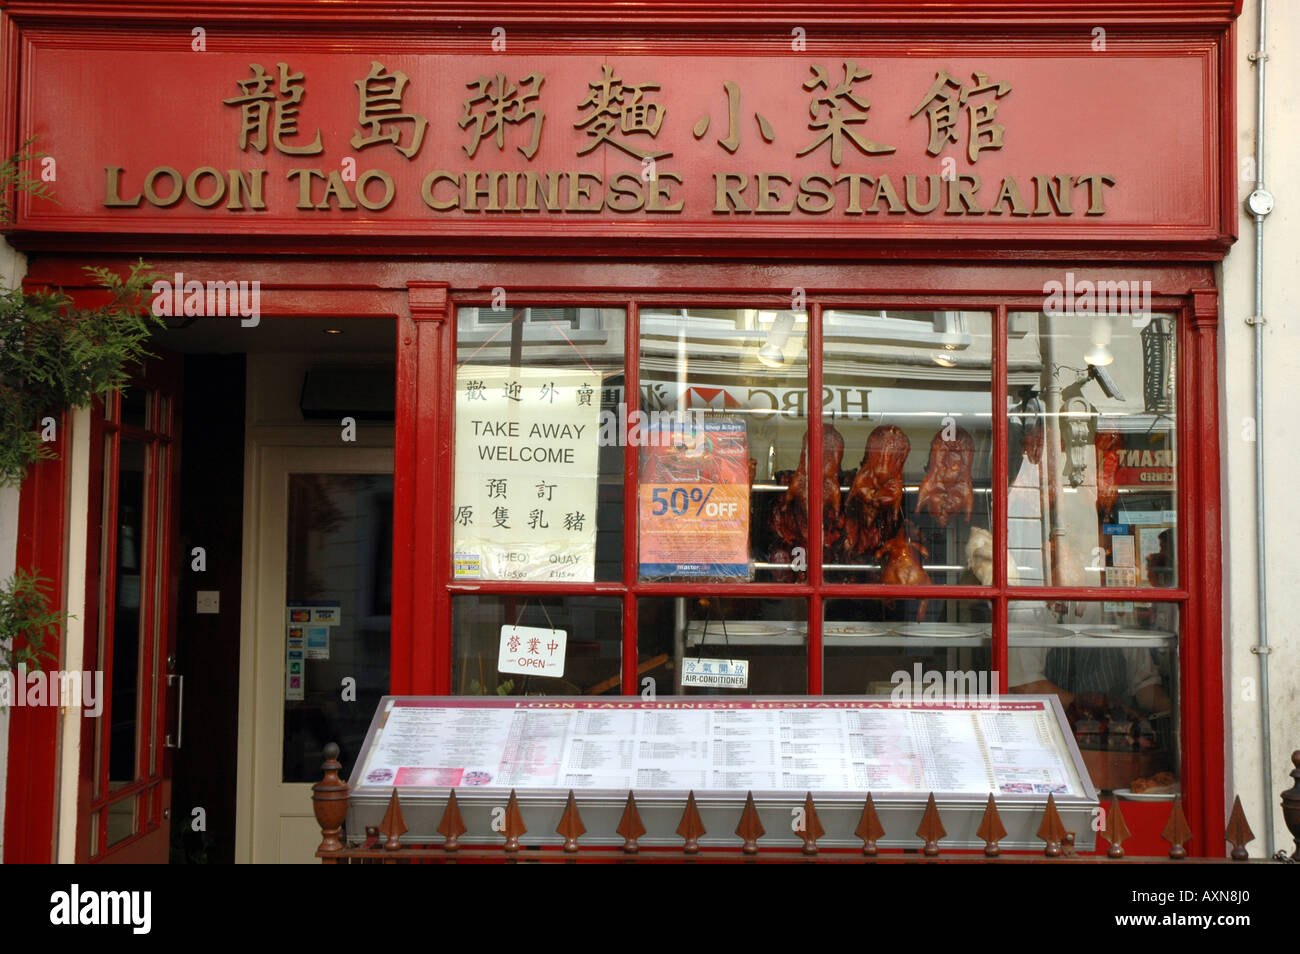 loon tao chinese restaurant at gerrard street in london chinatown stock photo 9647903 alamy. Black Bedroom Furniture Sets. Home Design Ideas